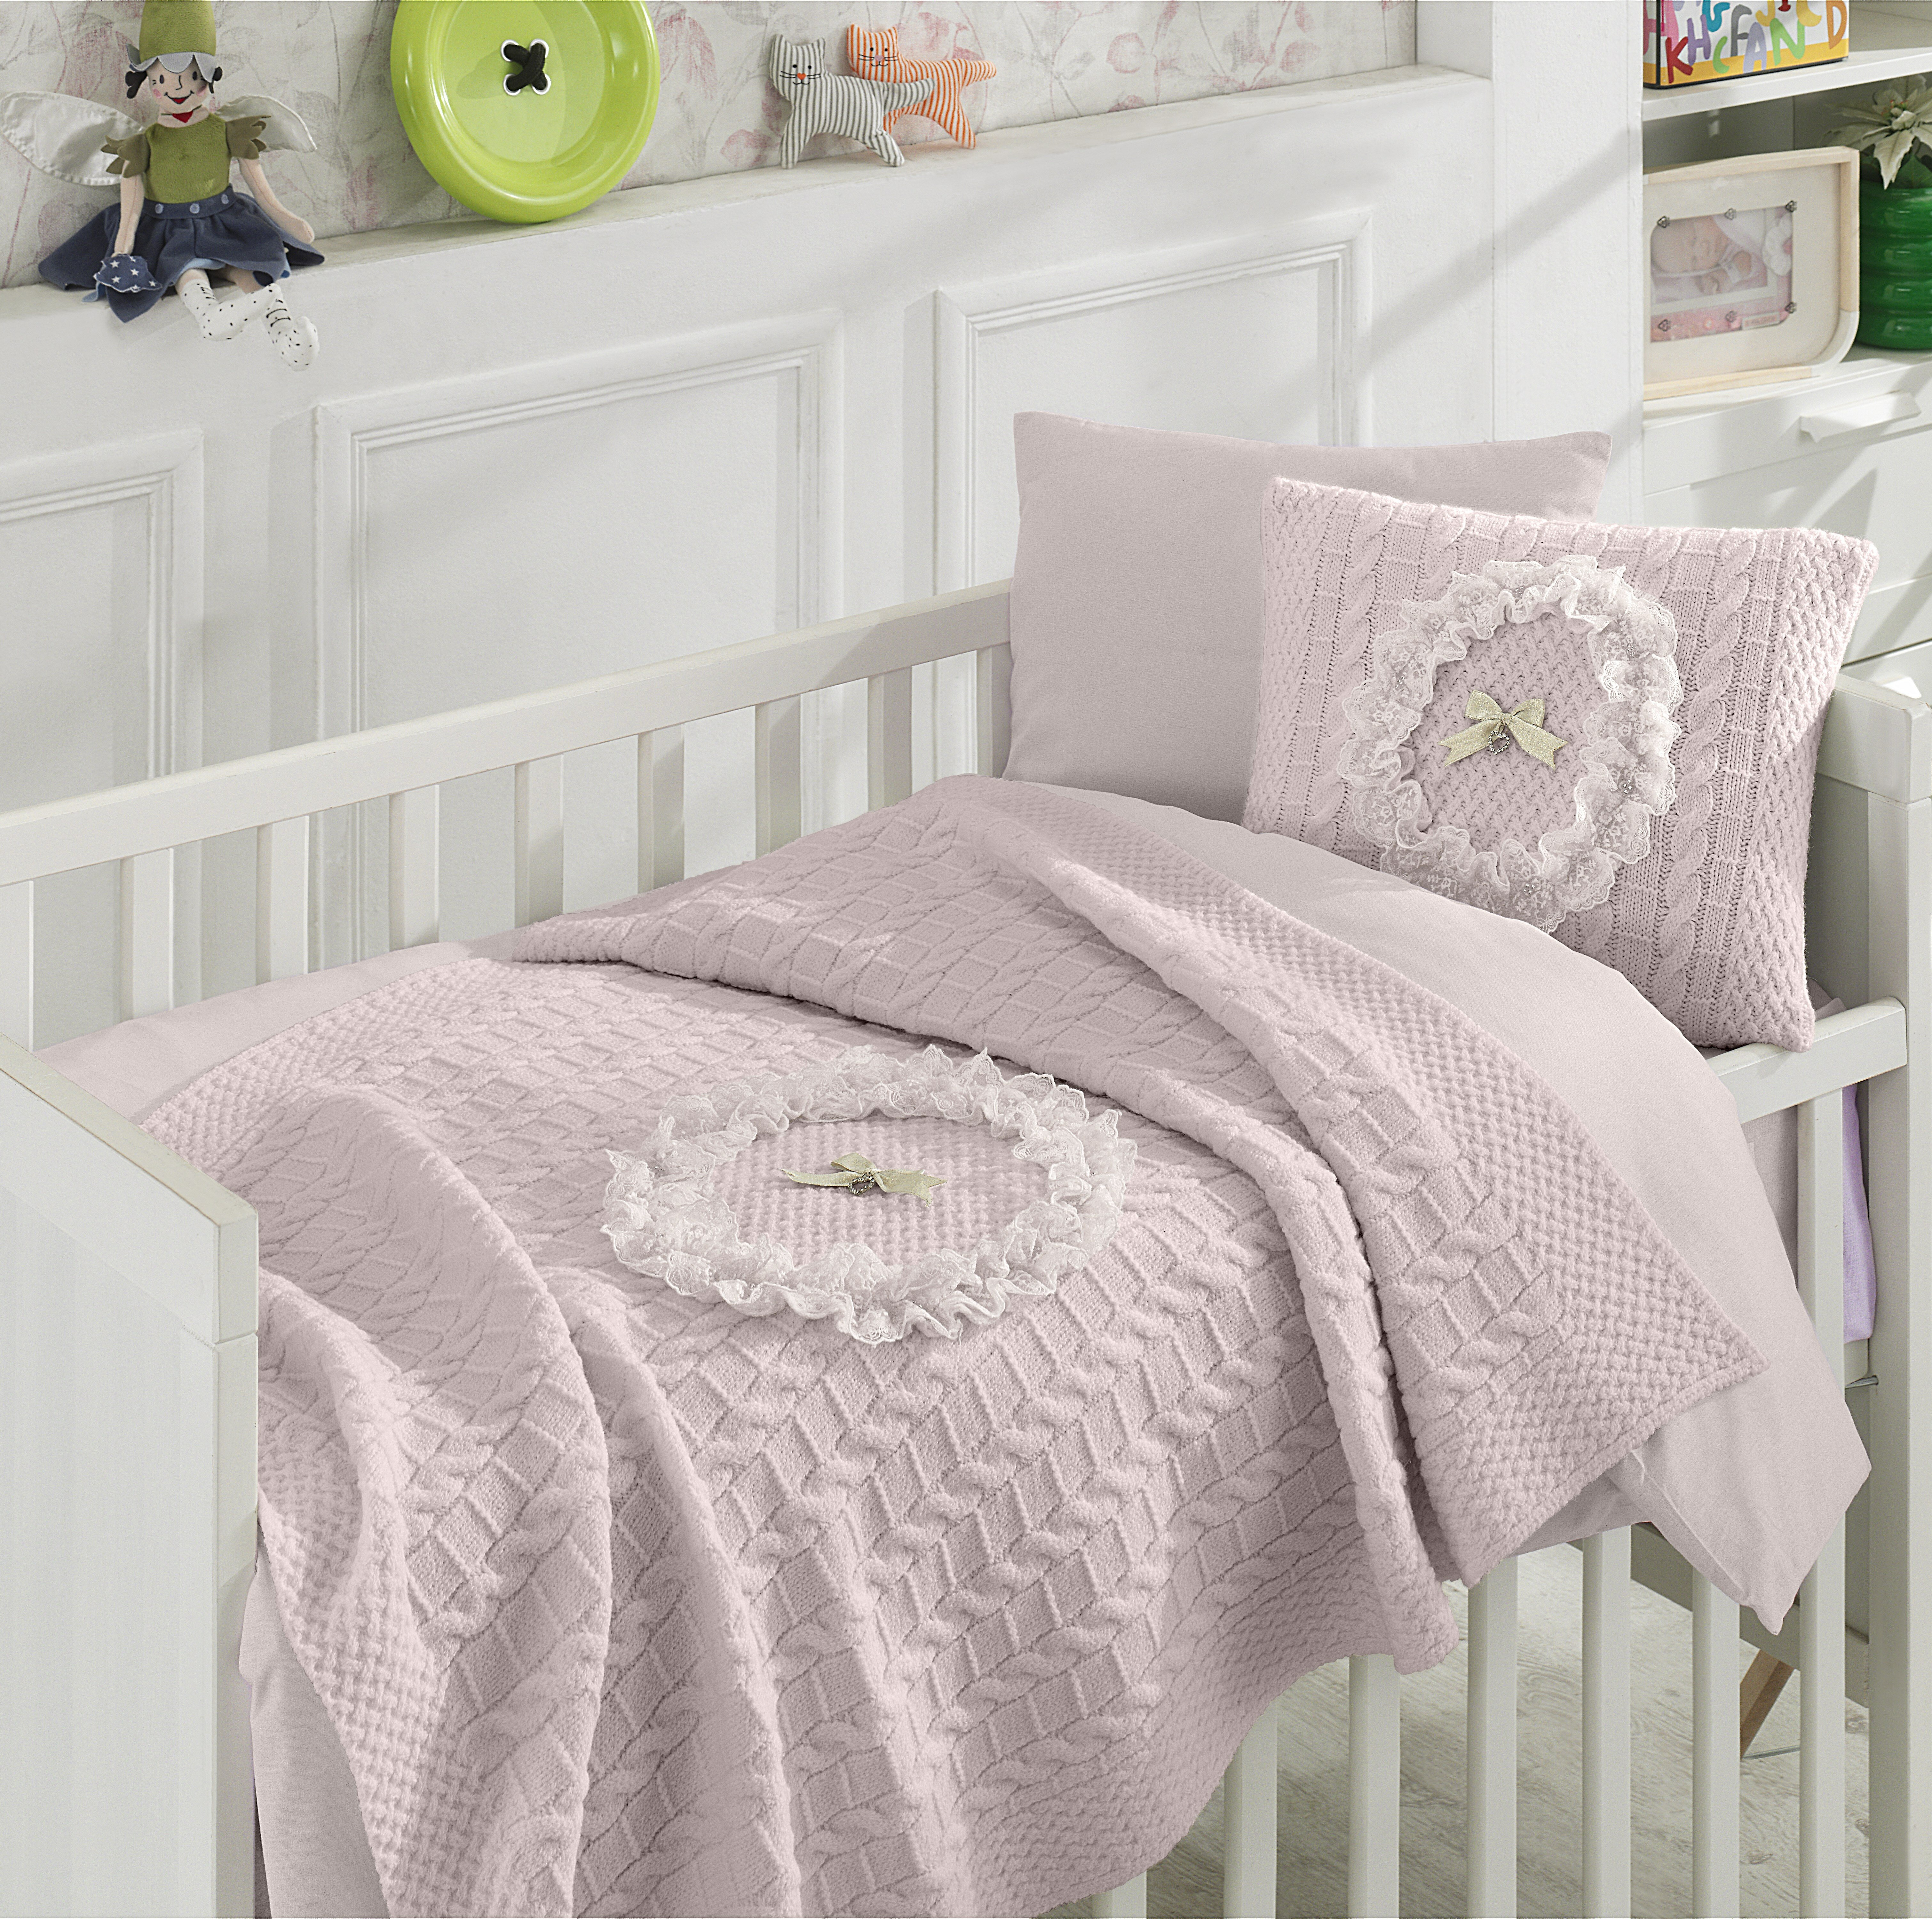 pgzg il bedding floral crib cribs listing rustic sheet fullxfull zoom set